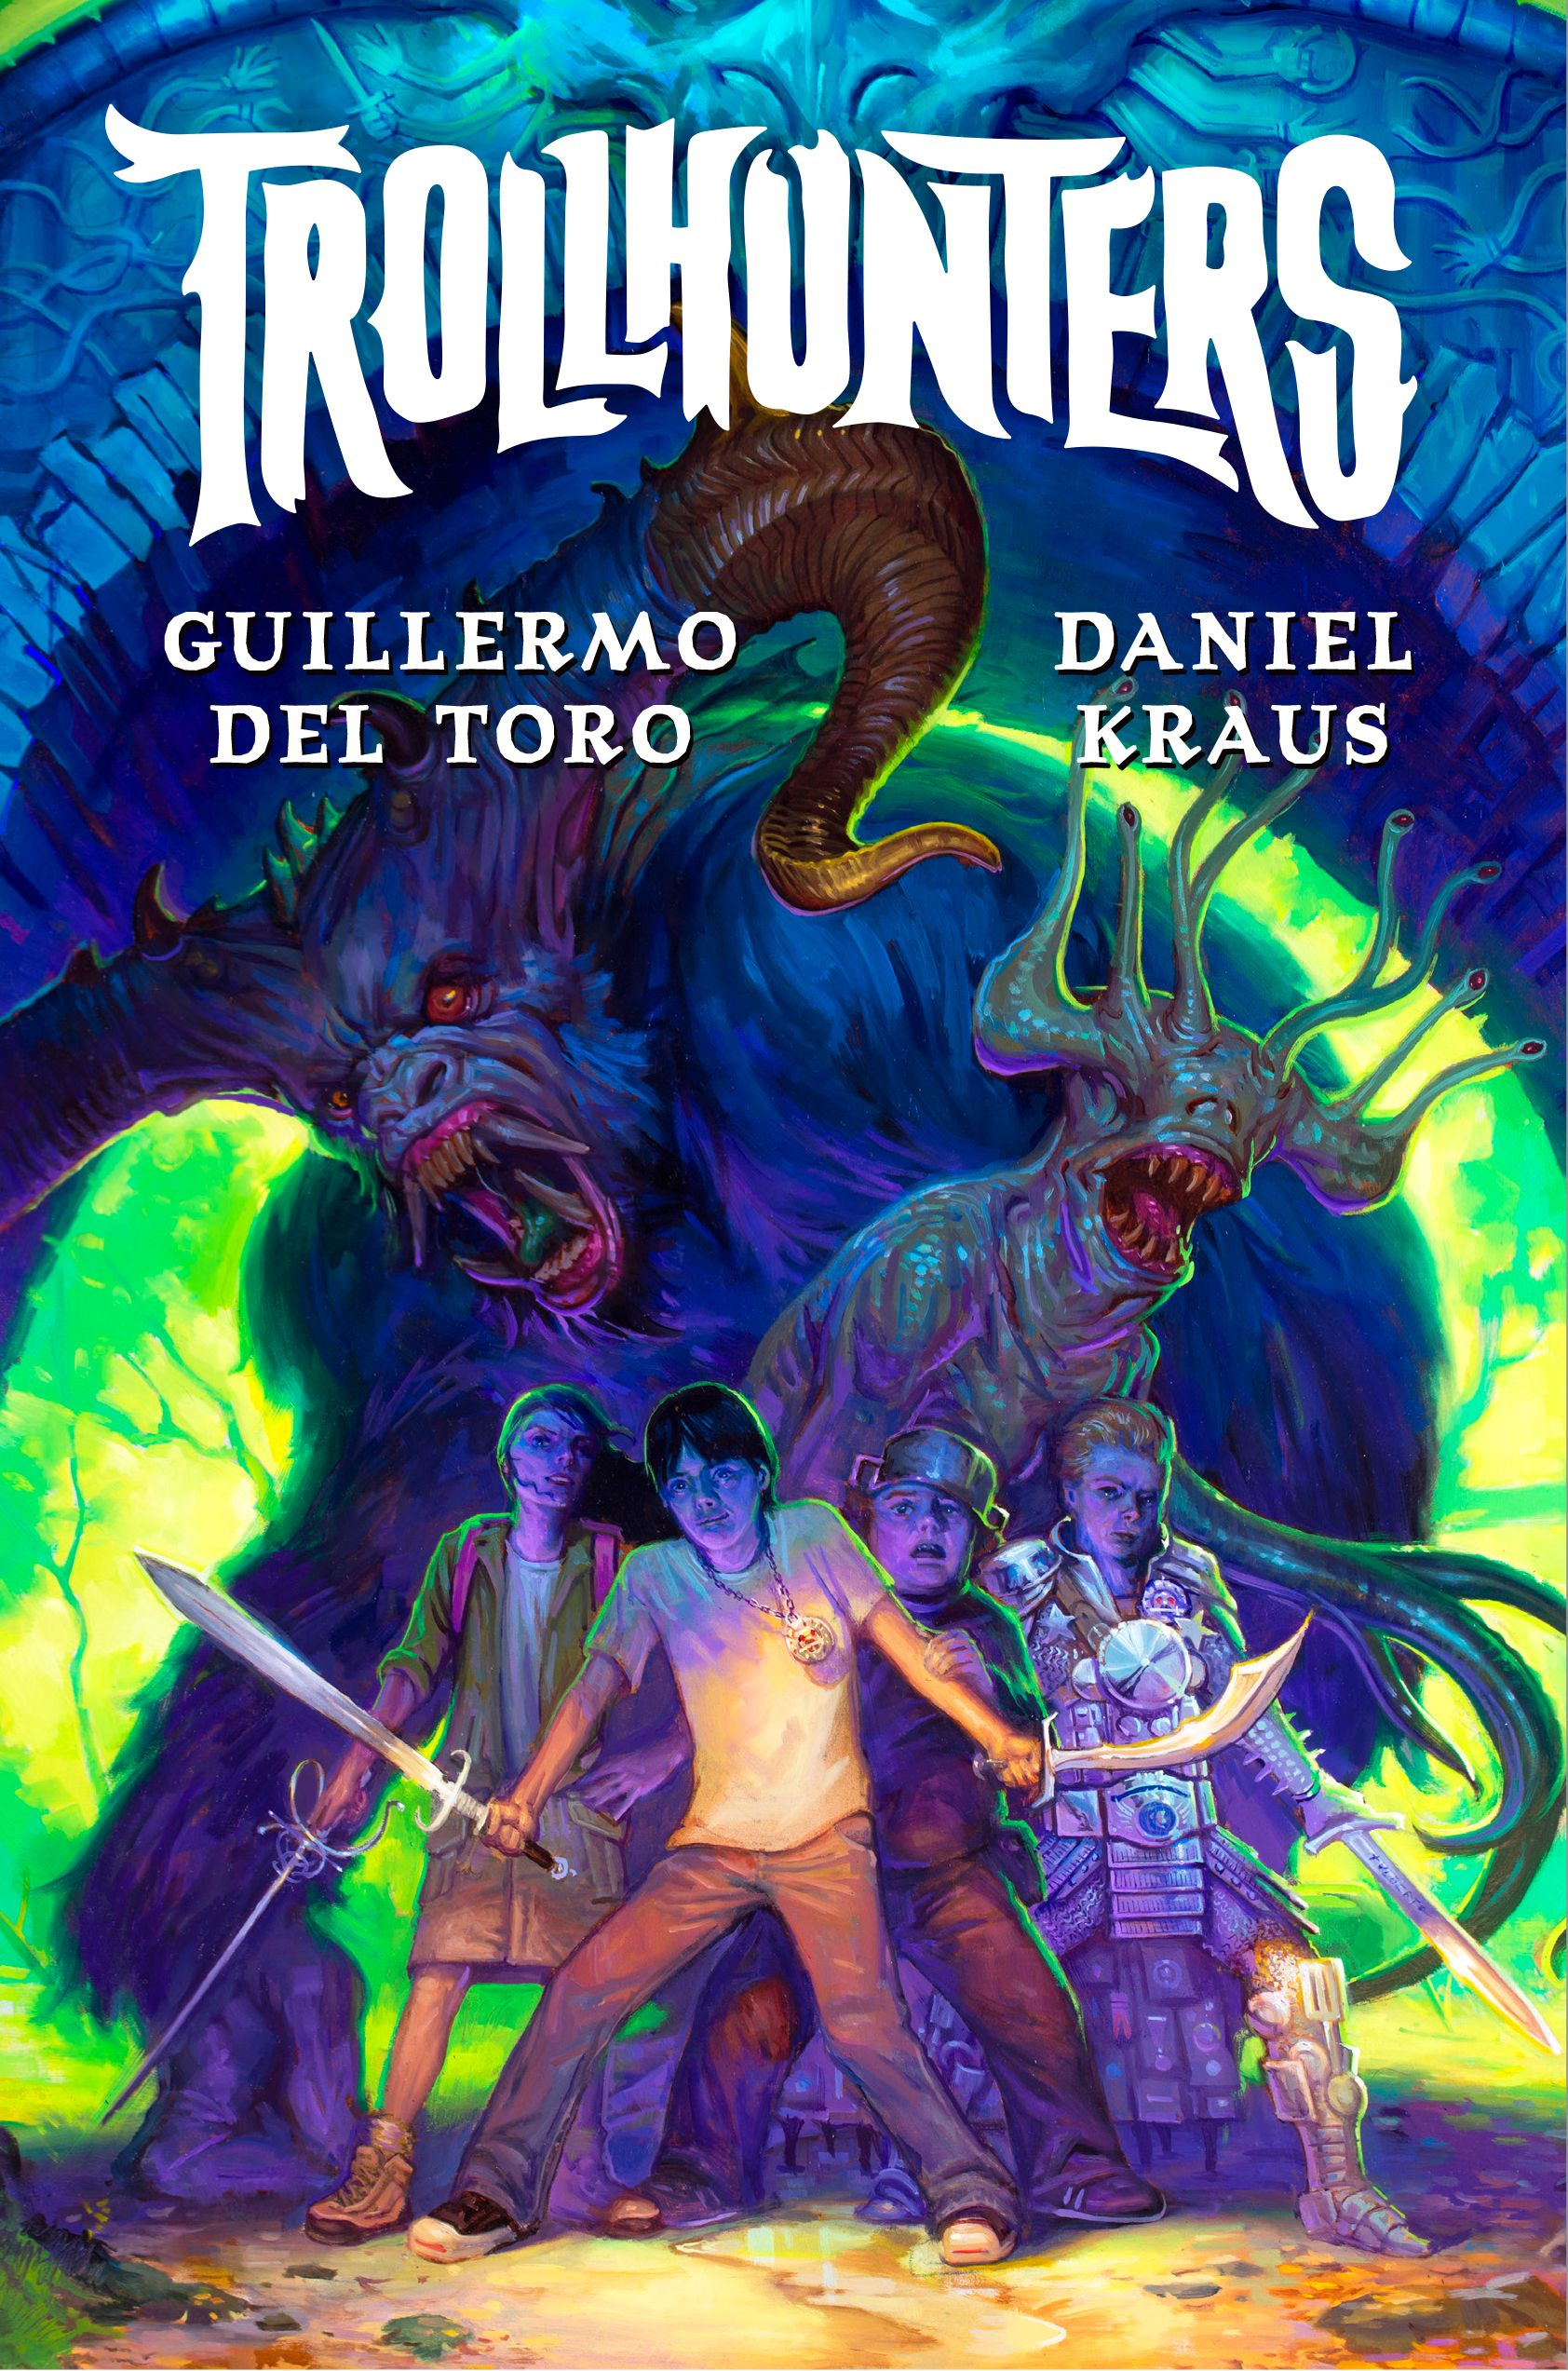 Are You Ready For A Children's Book About Monsters From Guillermo Del